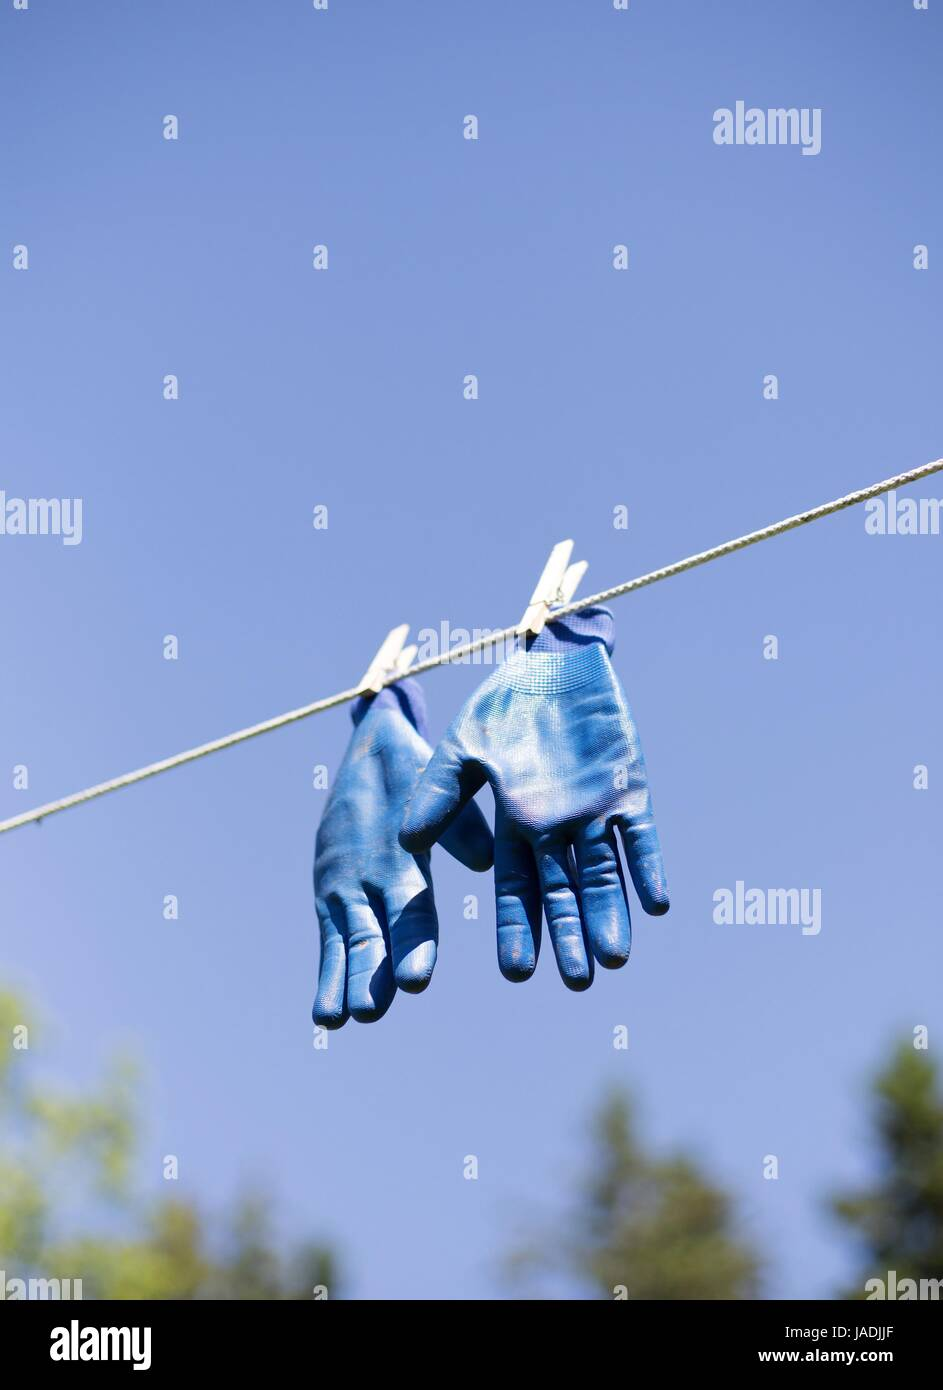 Blue rubber gloves pinned to a clothes line. - Stock Image